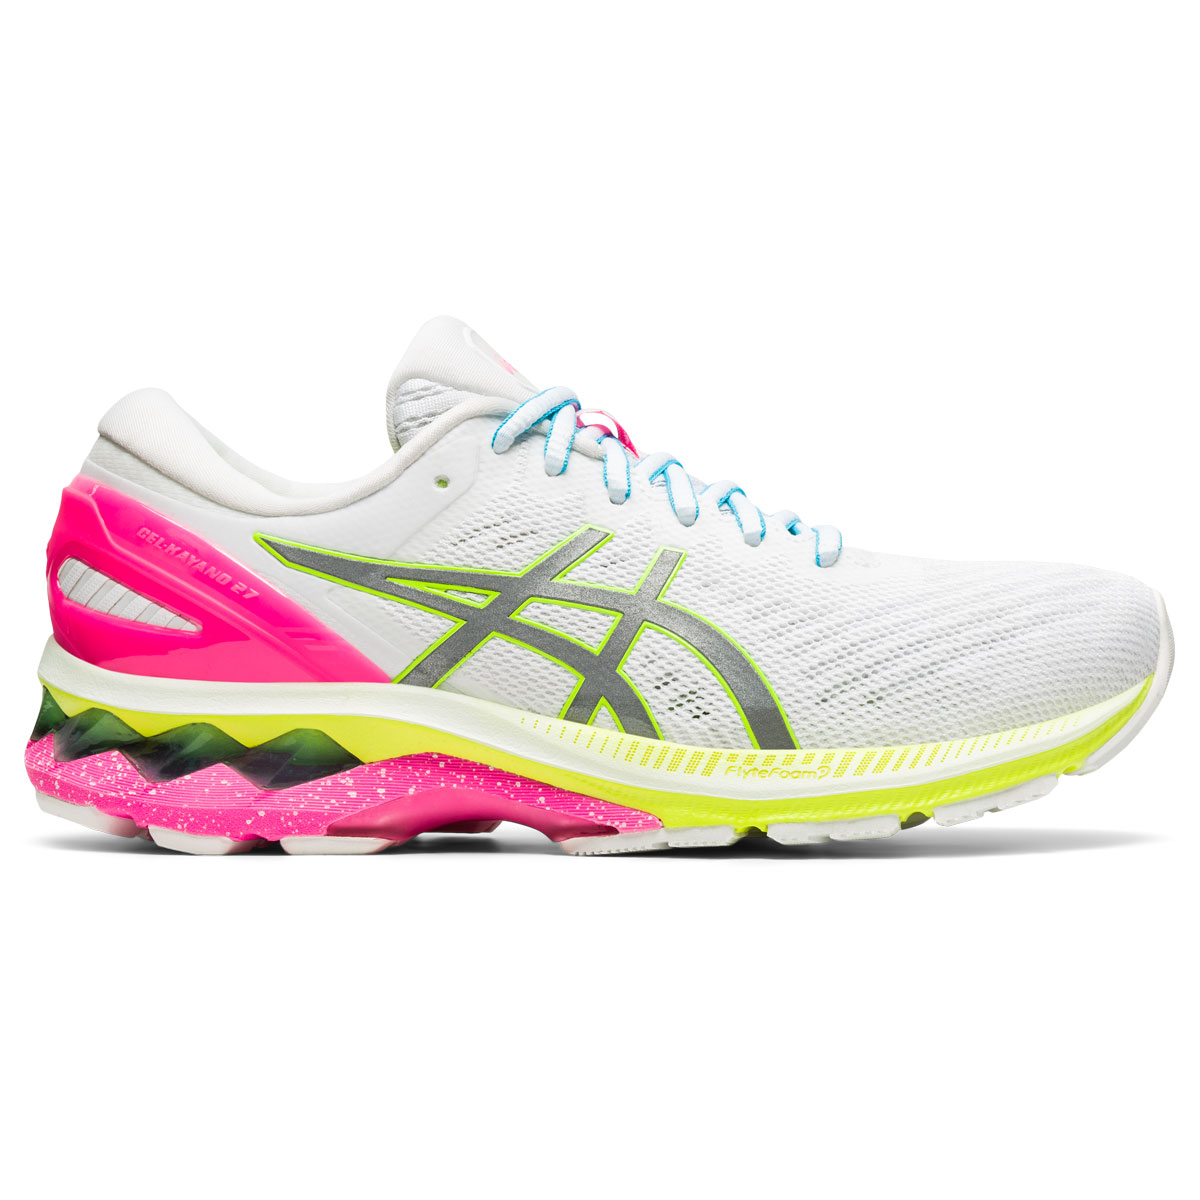 Women's Asics GEL-Kayano 27 Lite-Show Running Shoe - Color: White/Pure Silv (Regular Width) - Size: 5, White/Pure Silver, large, image 1